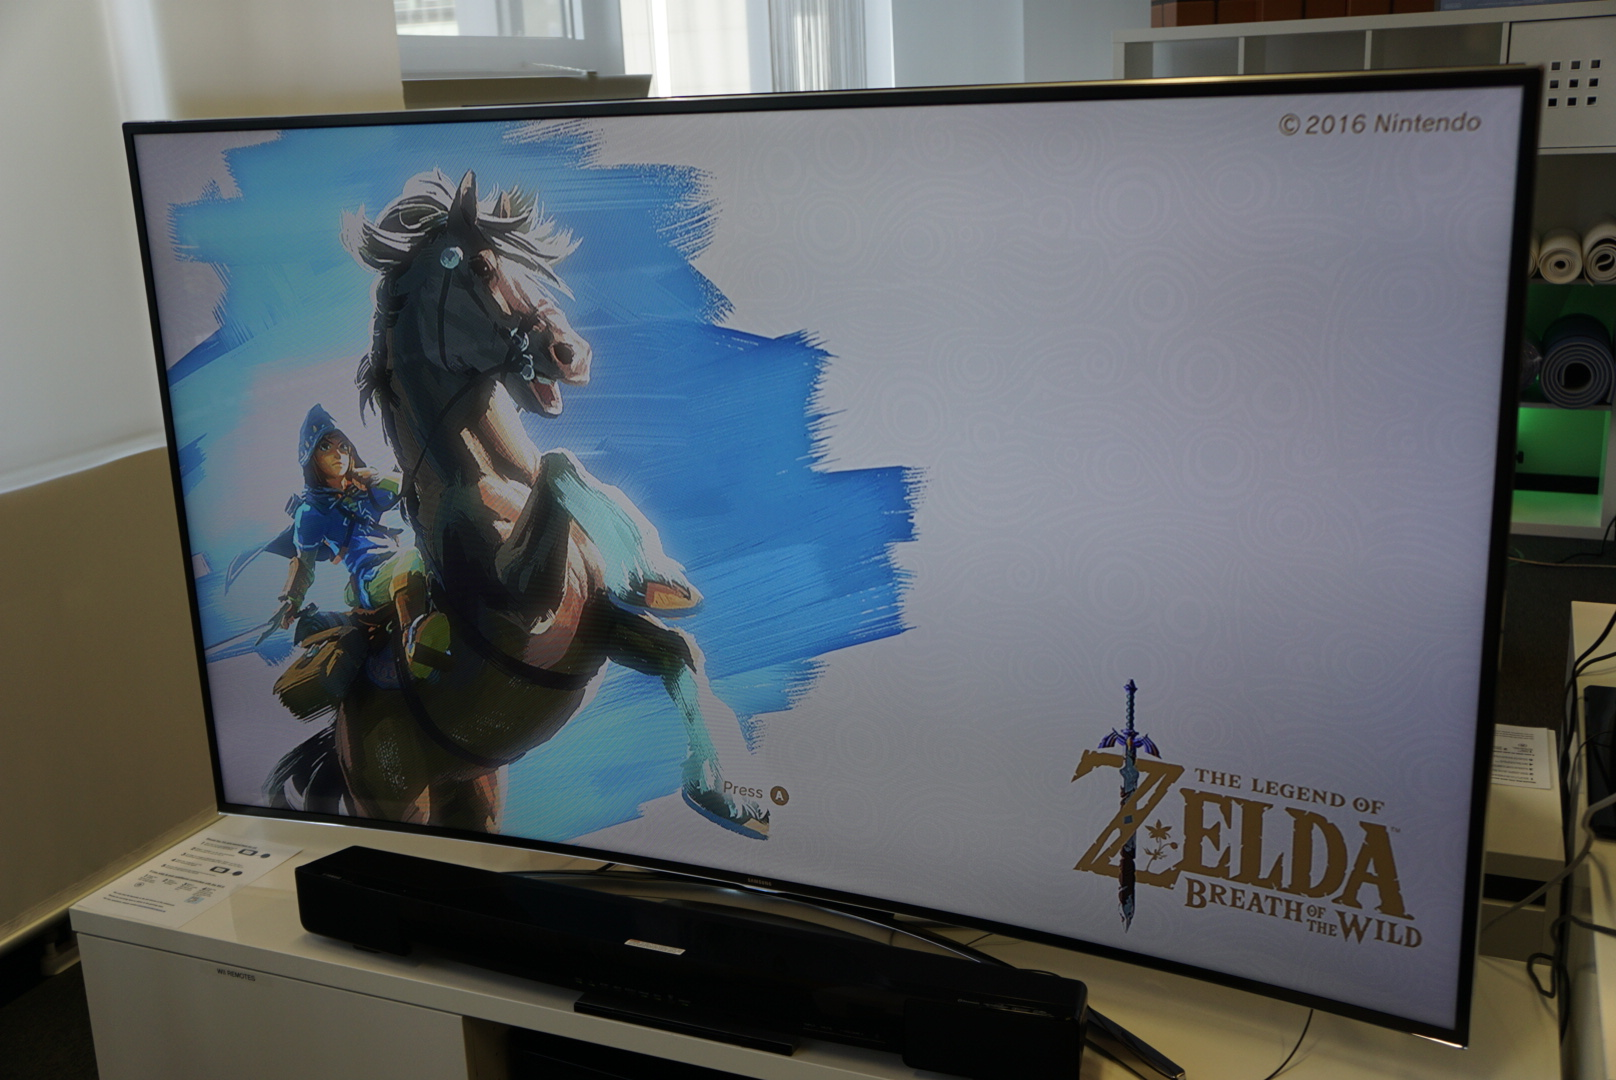 Anspielbericht: The Legend of Zelda - Breath of the Wild